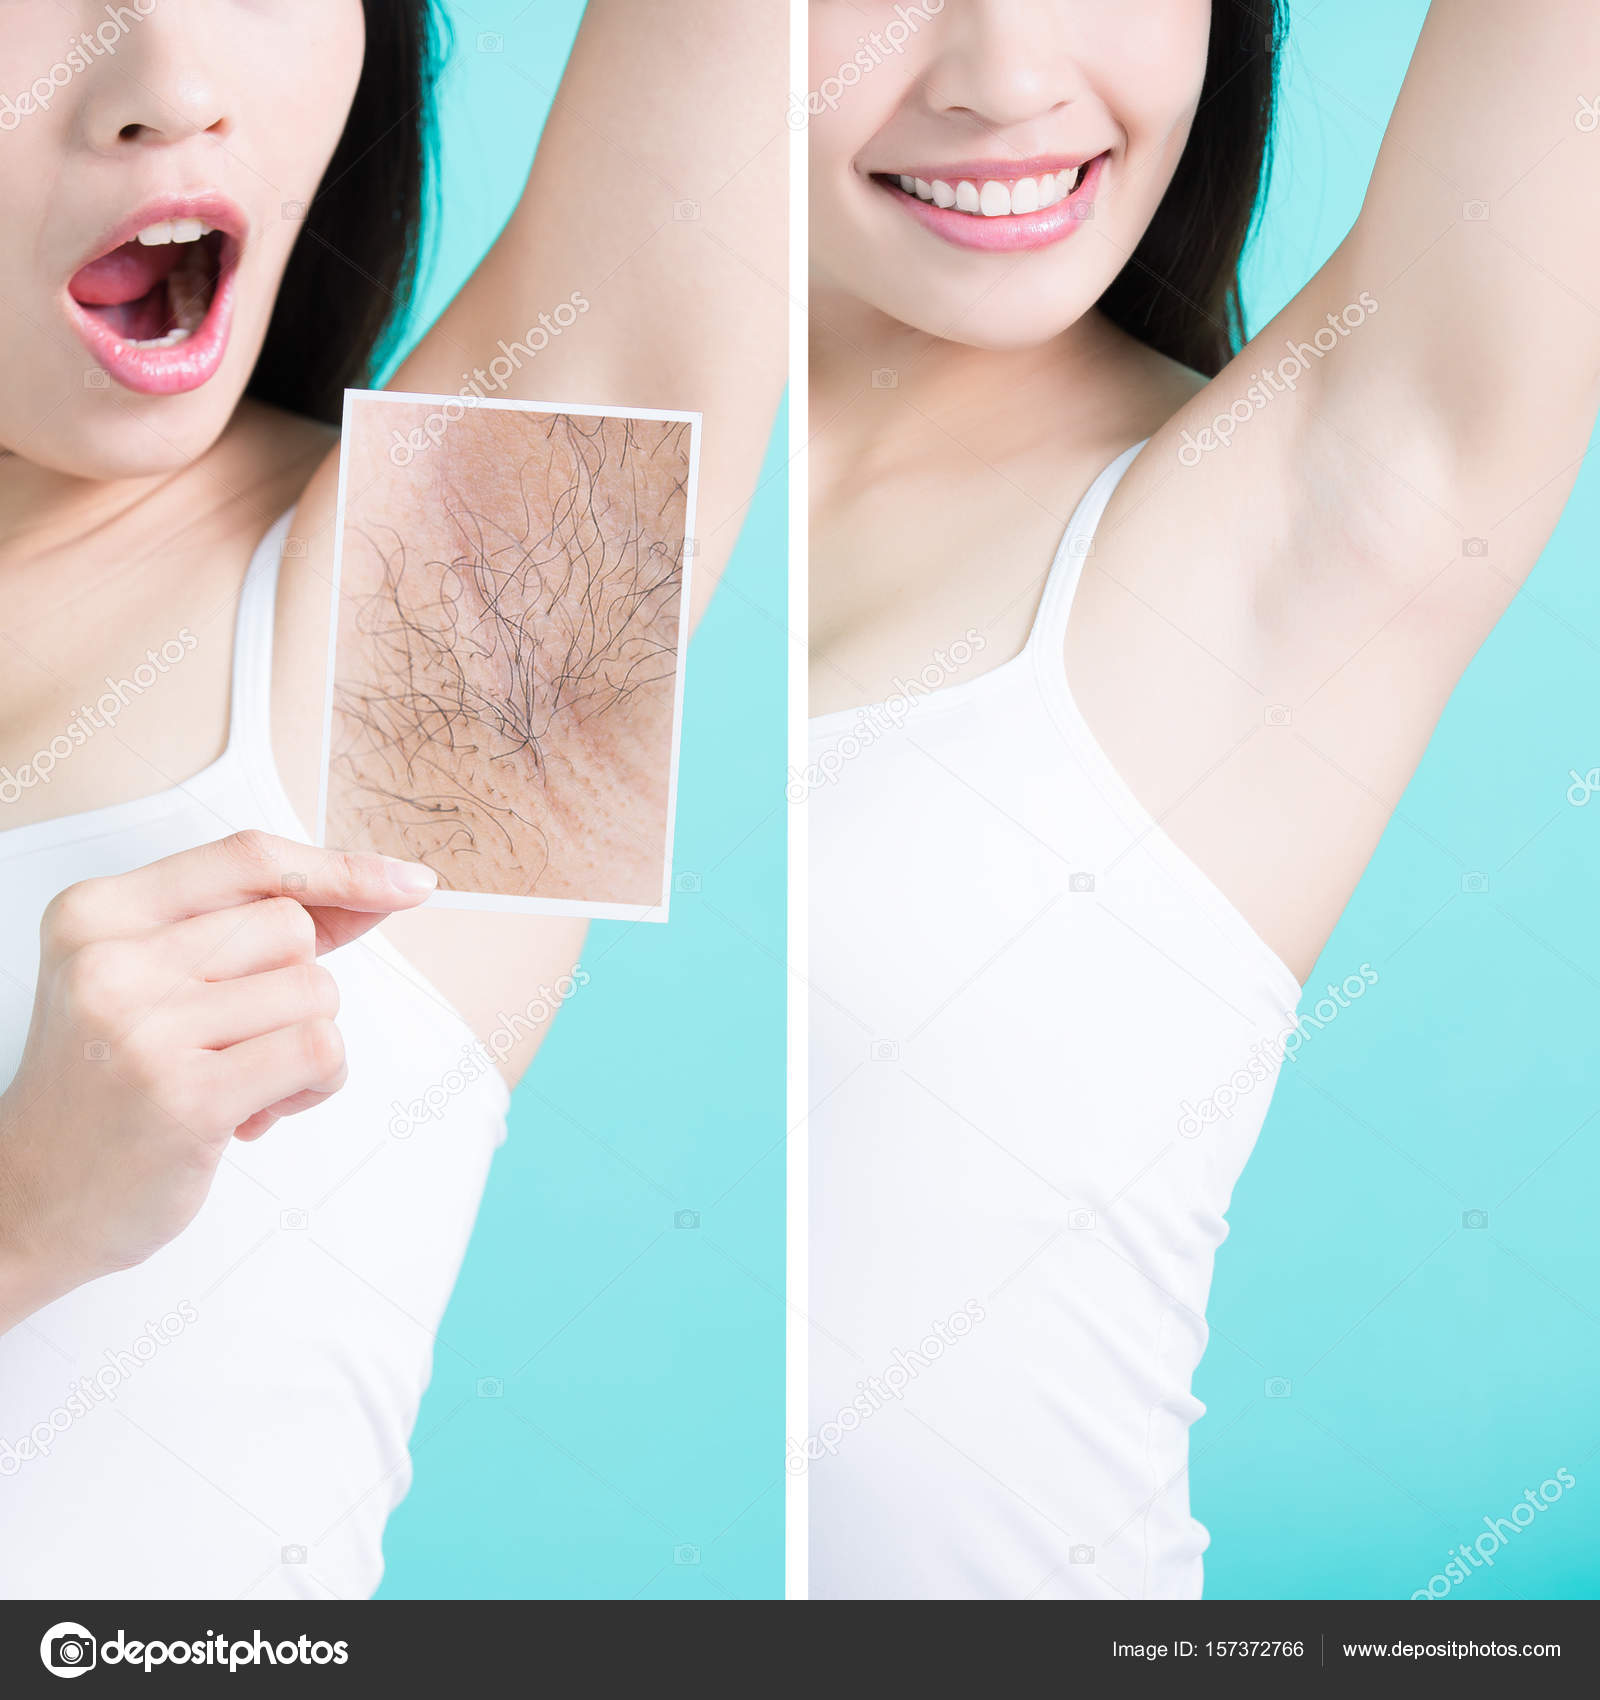 woman with under armpit problem stock photo ryanking999 157372766